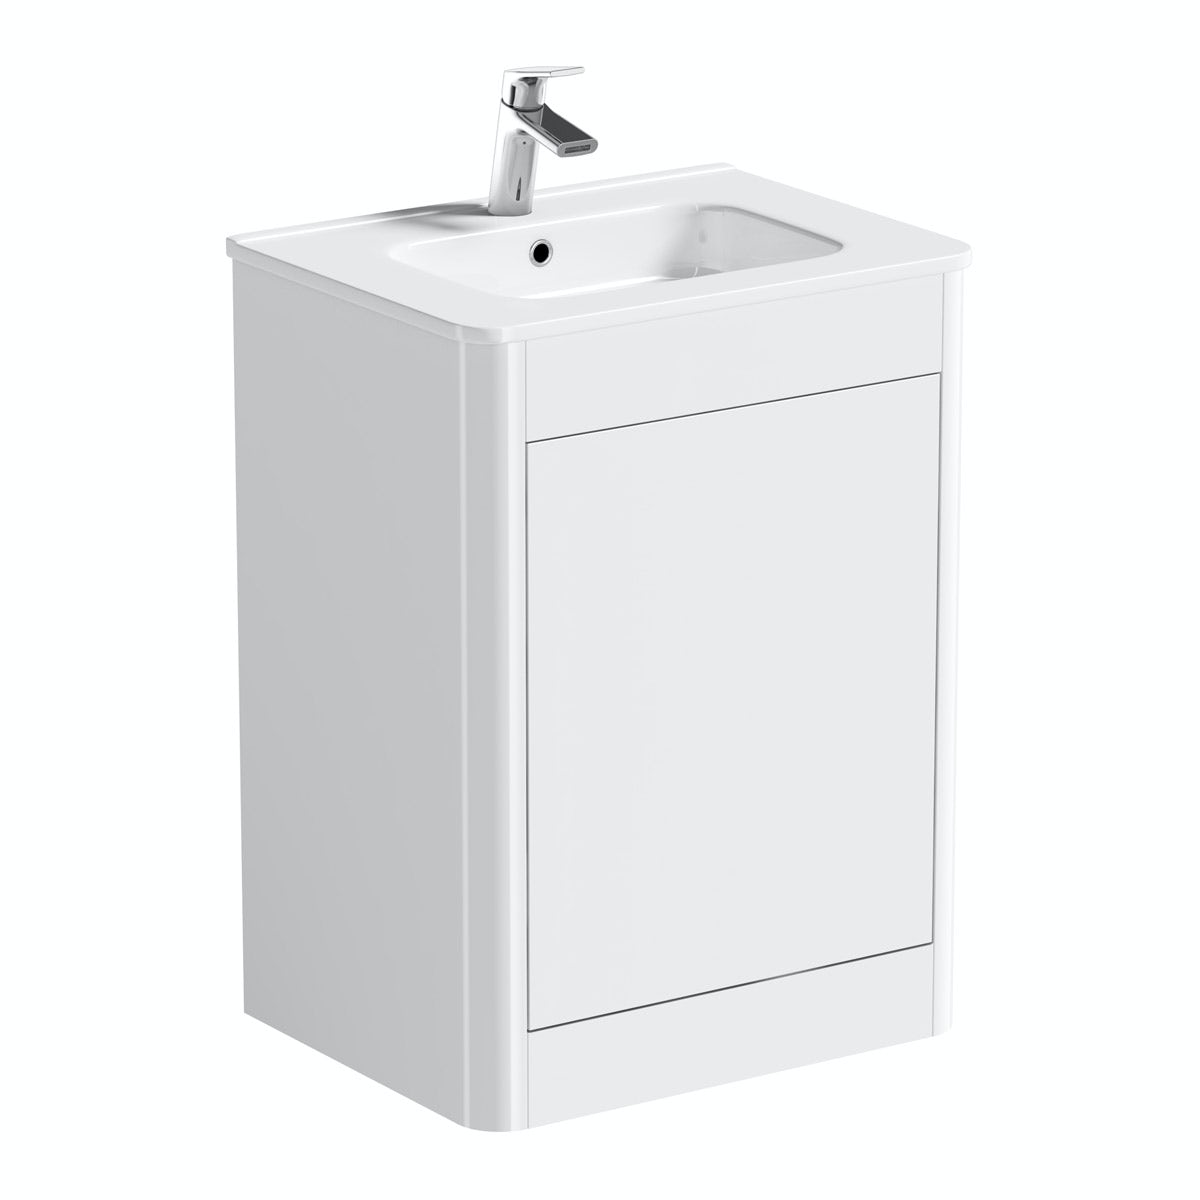 Mode Carter ice white floor mounted vanity unit and basin 600mm